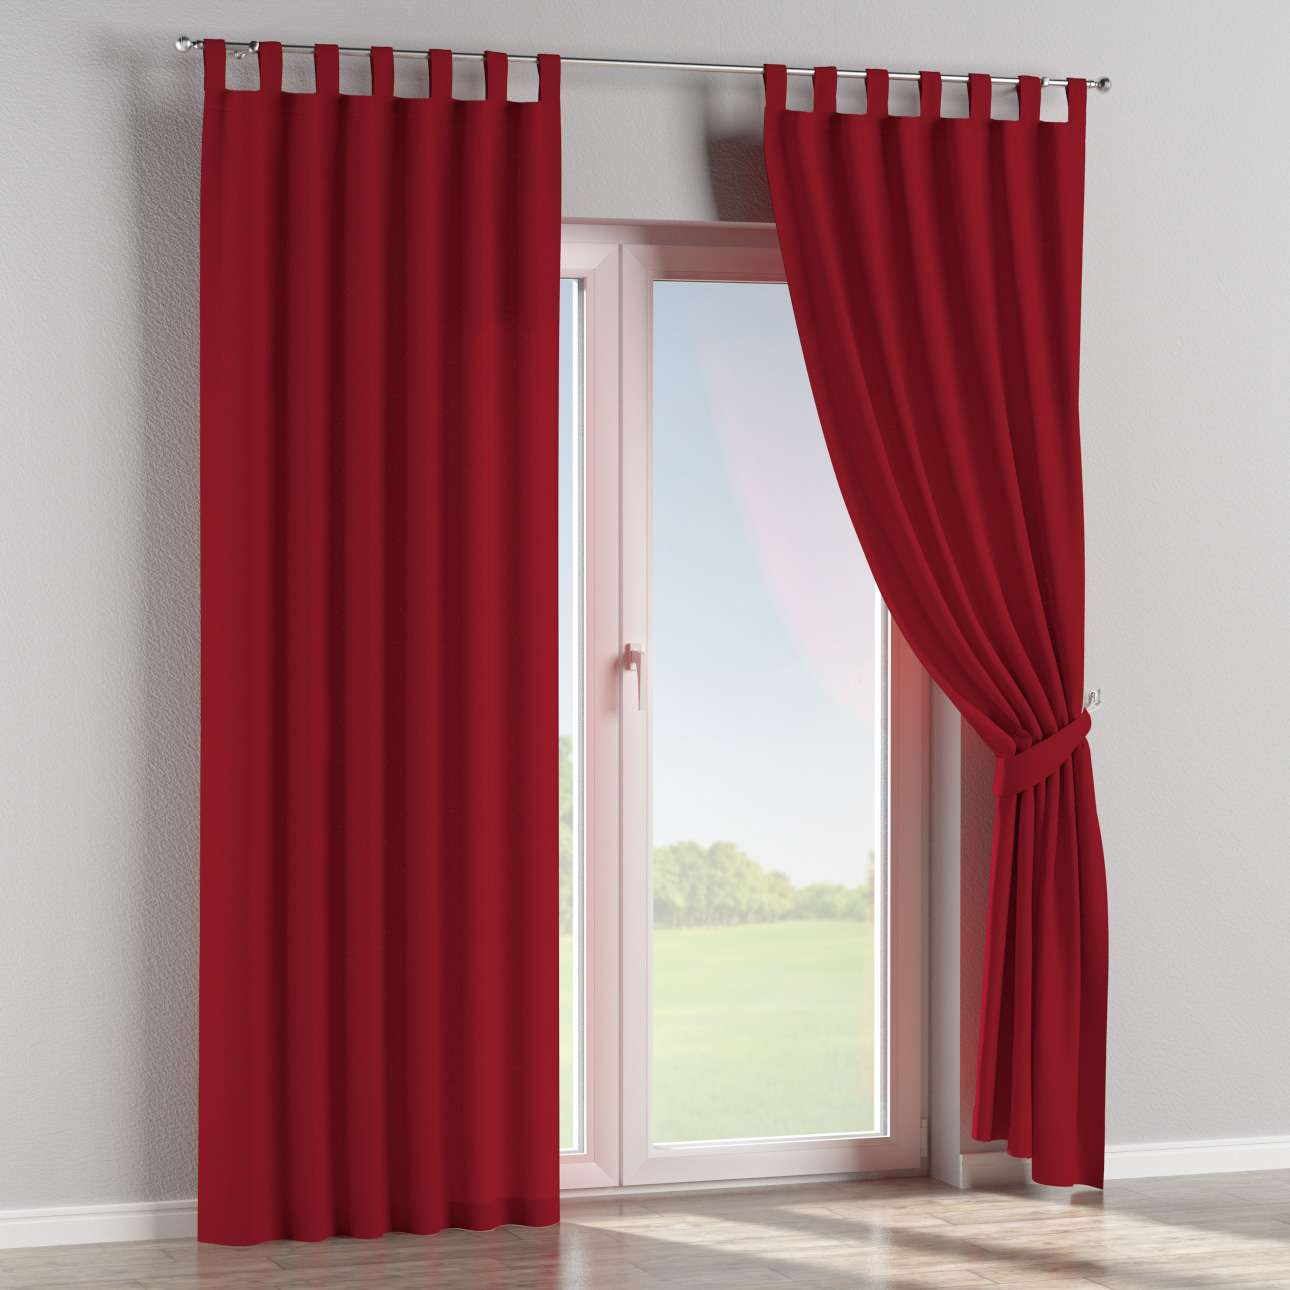 Tab top curtains in collection Chenille, fabric: 702-24